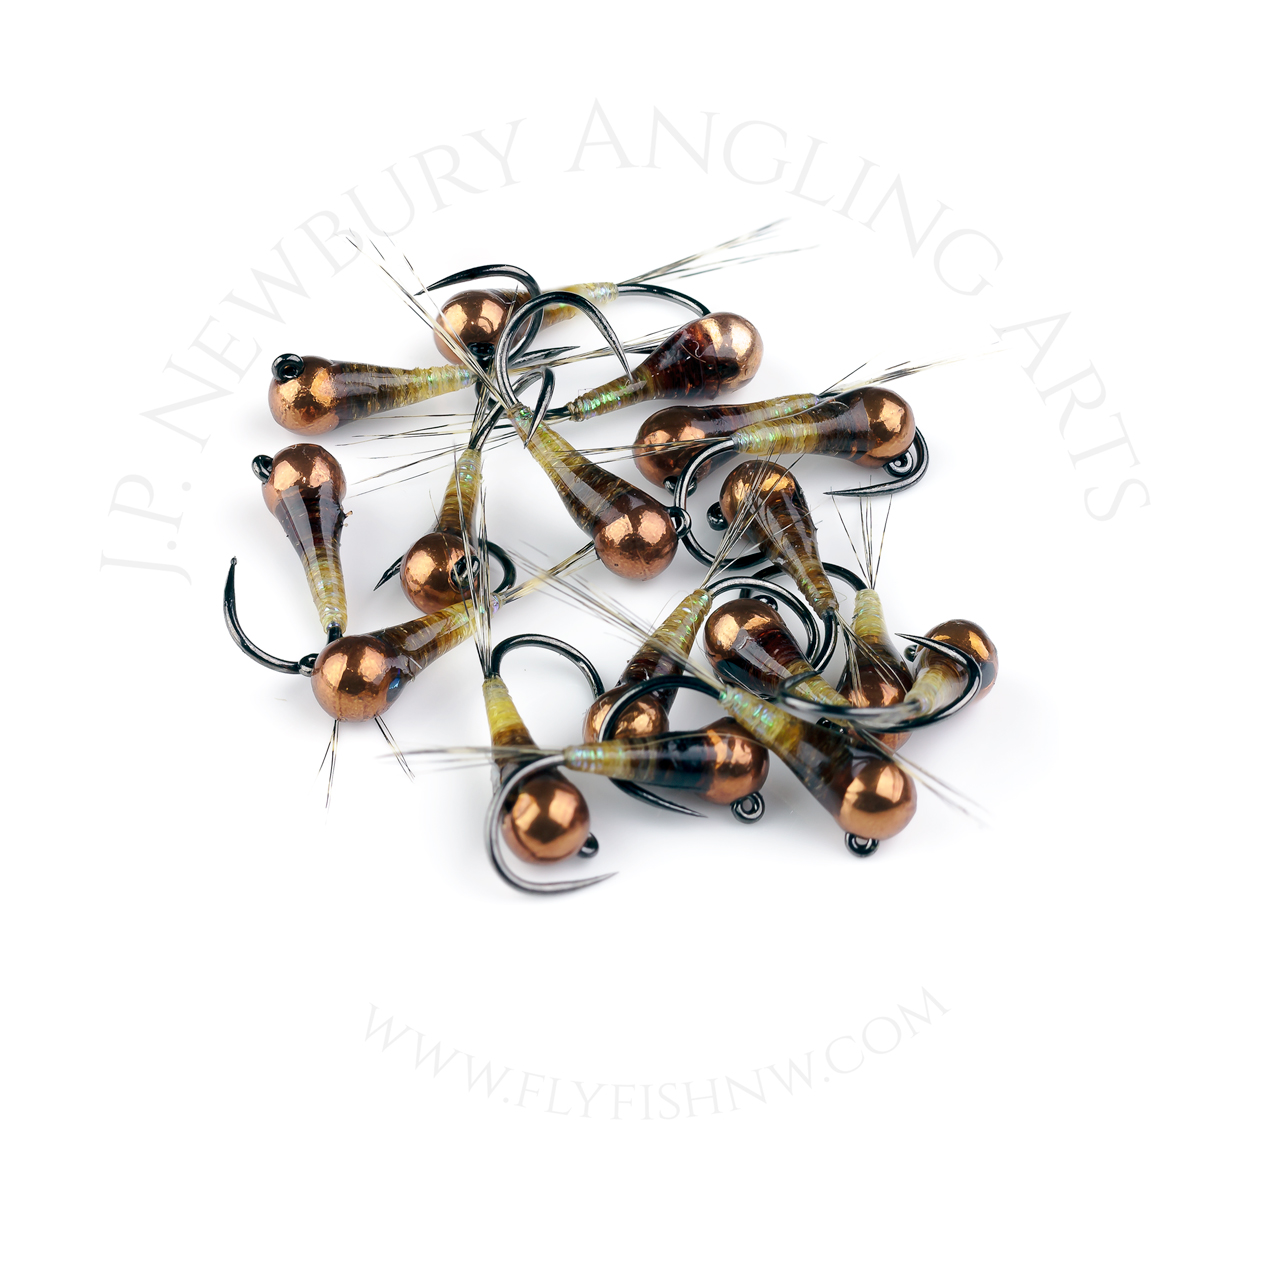 New Jigs Added!